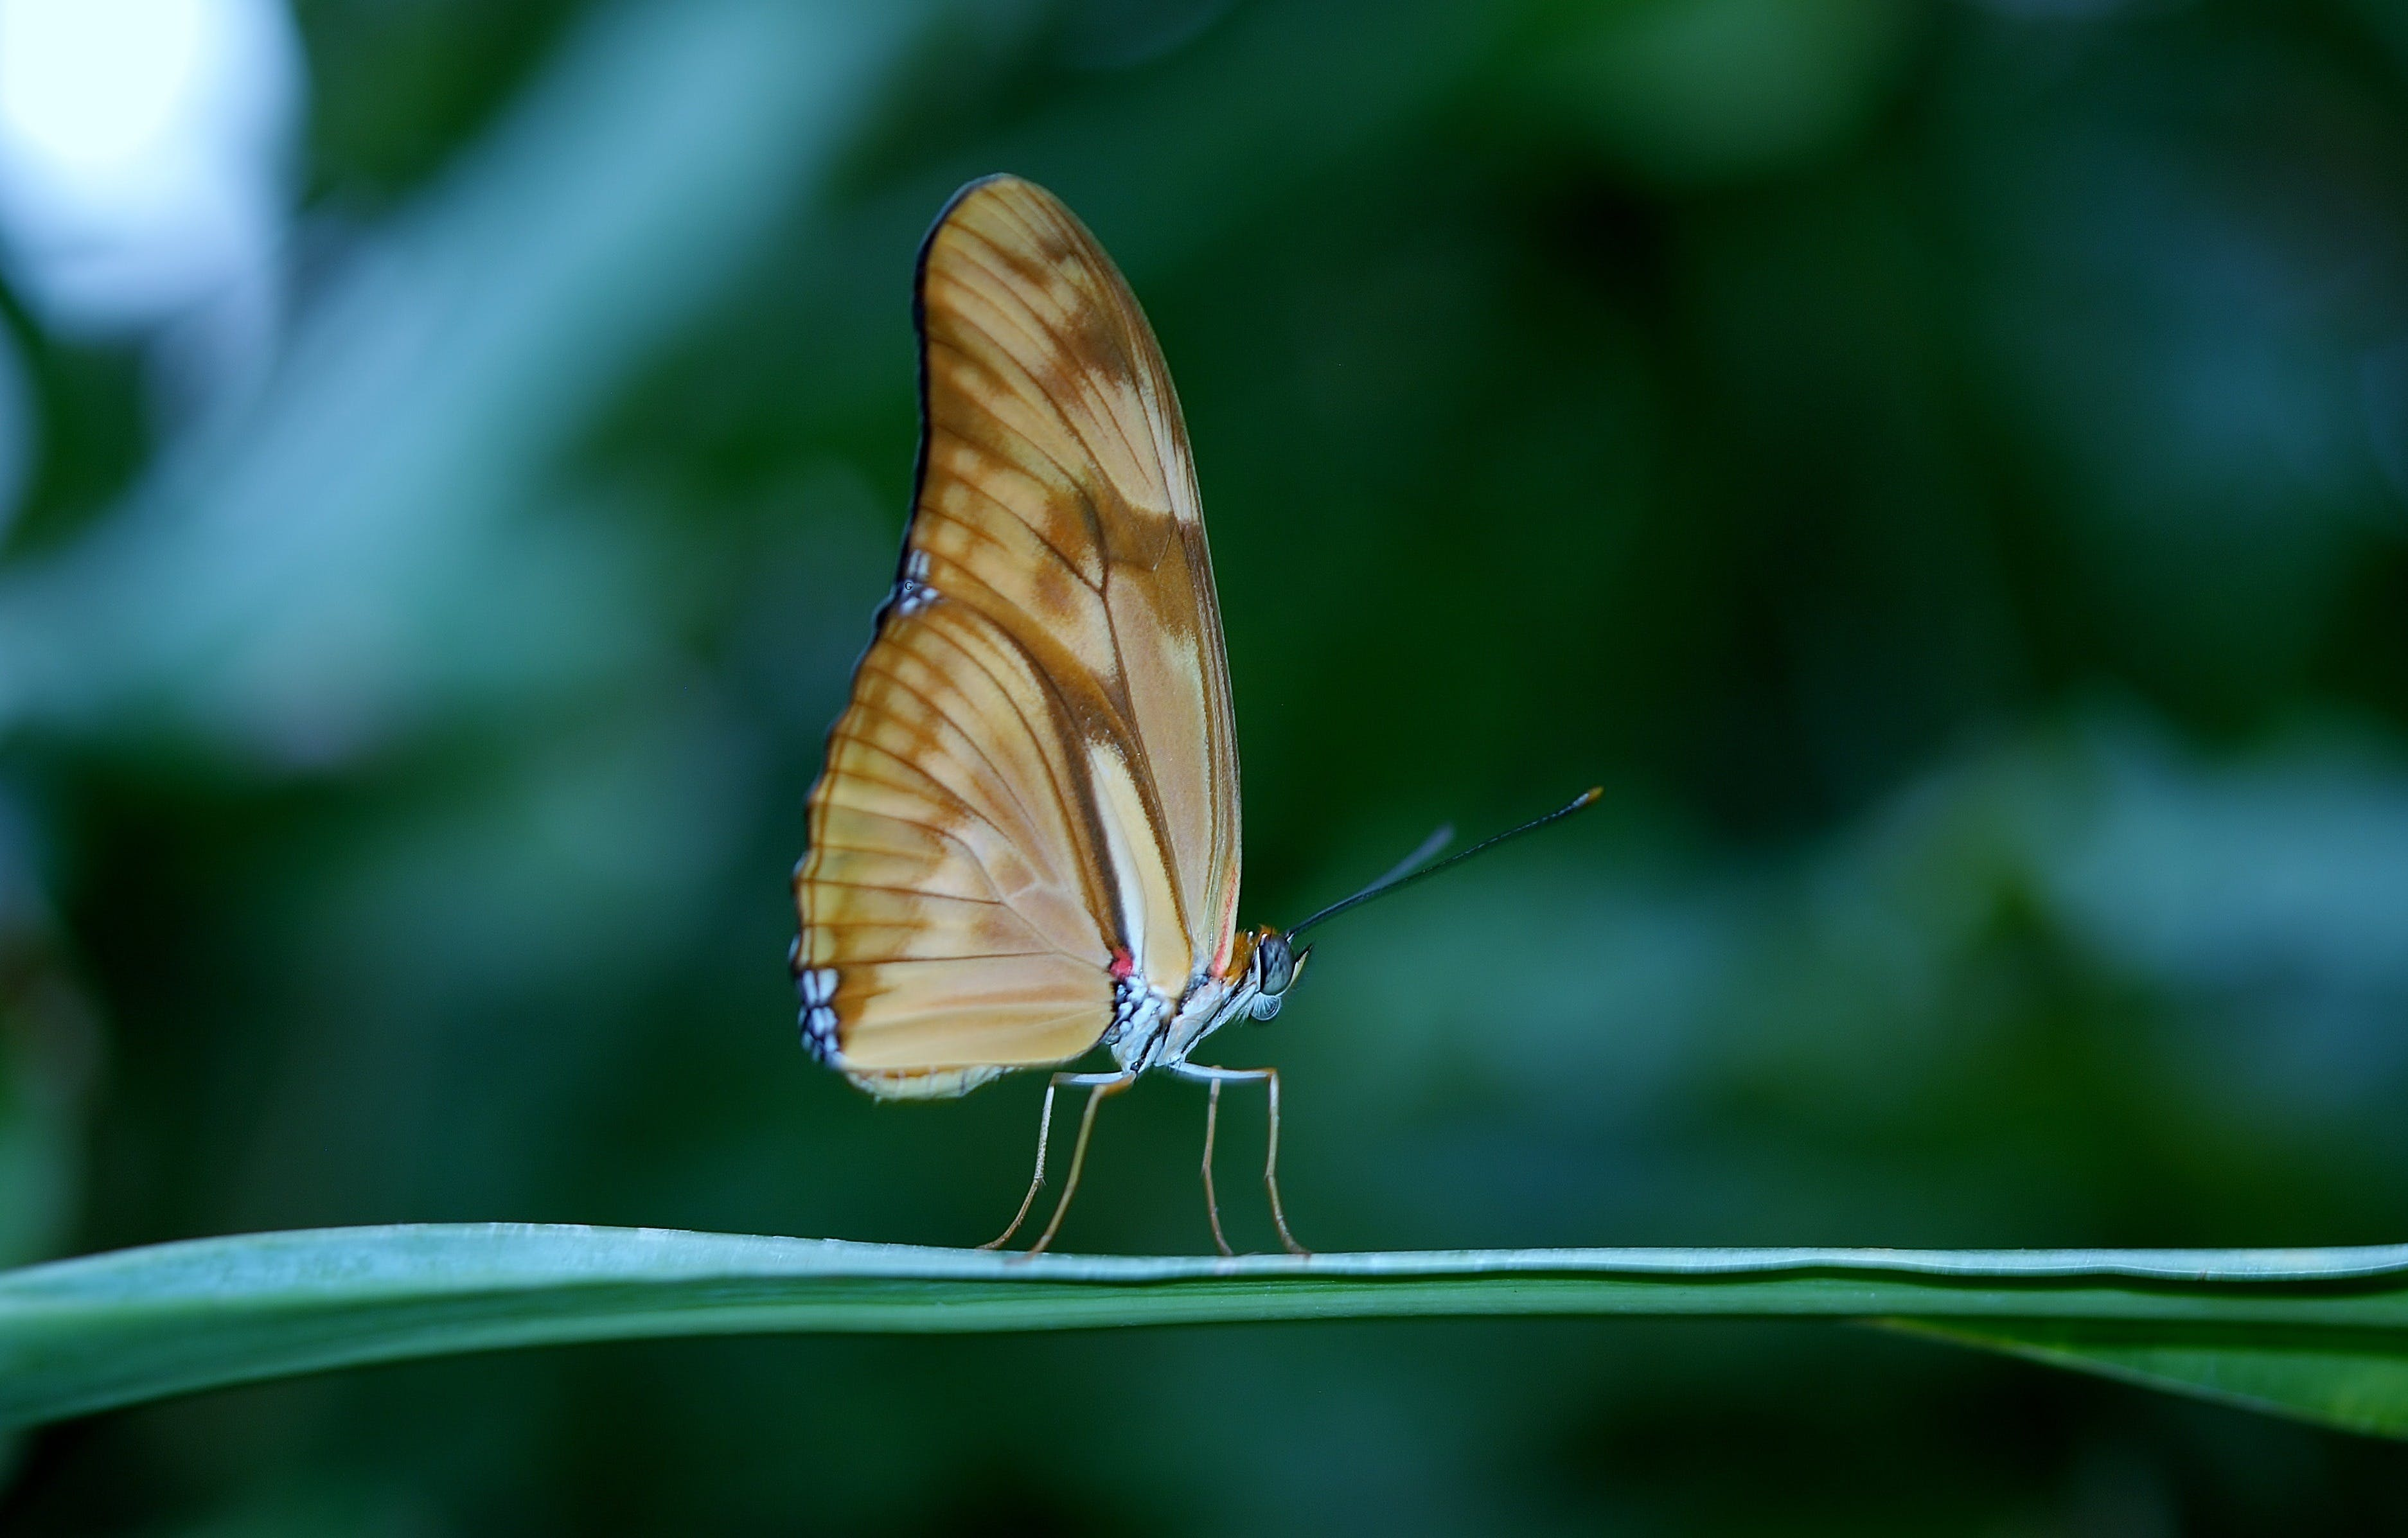 Brown Butterfly on Green Plant Leaf